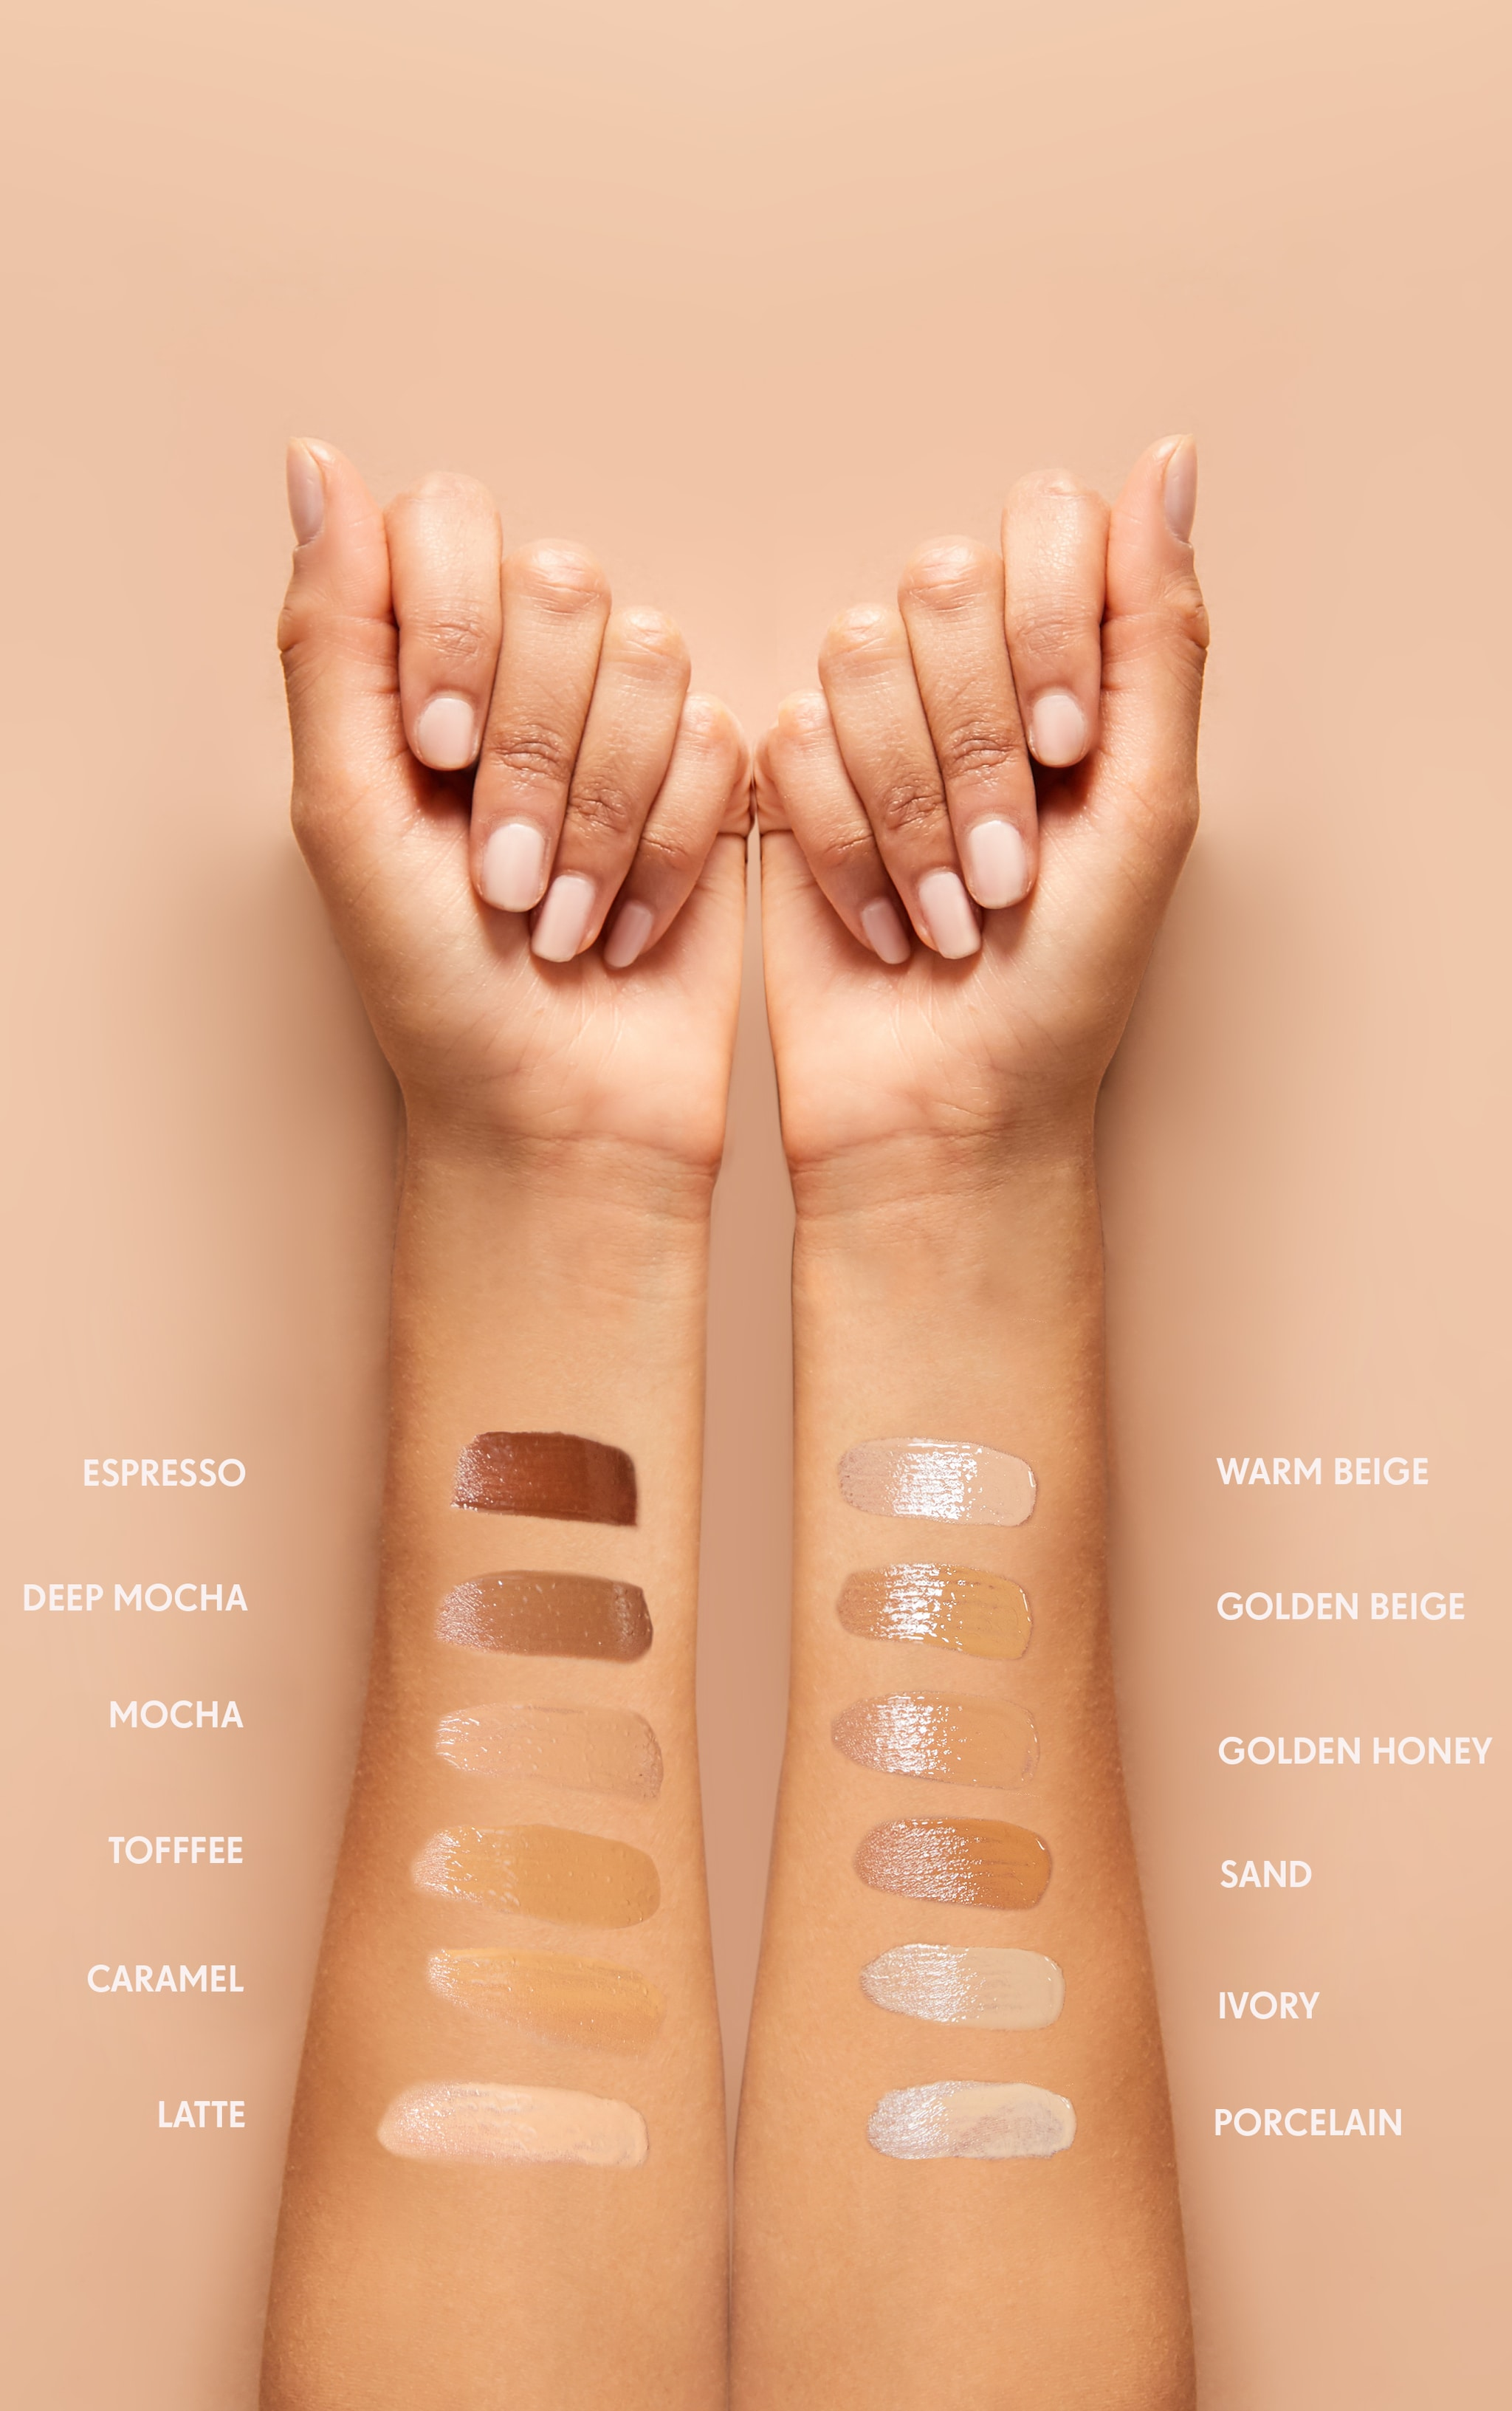 PRETTYLITTLETHING Photo Finish Espresso Foundation 3